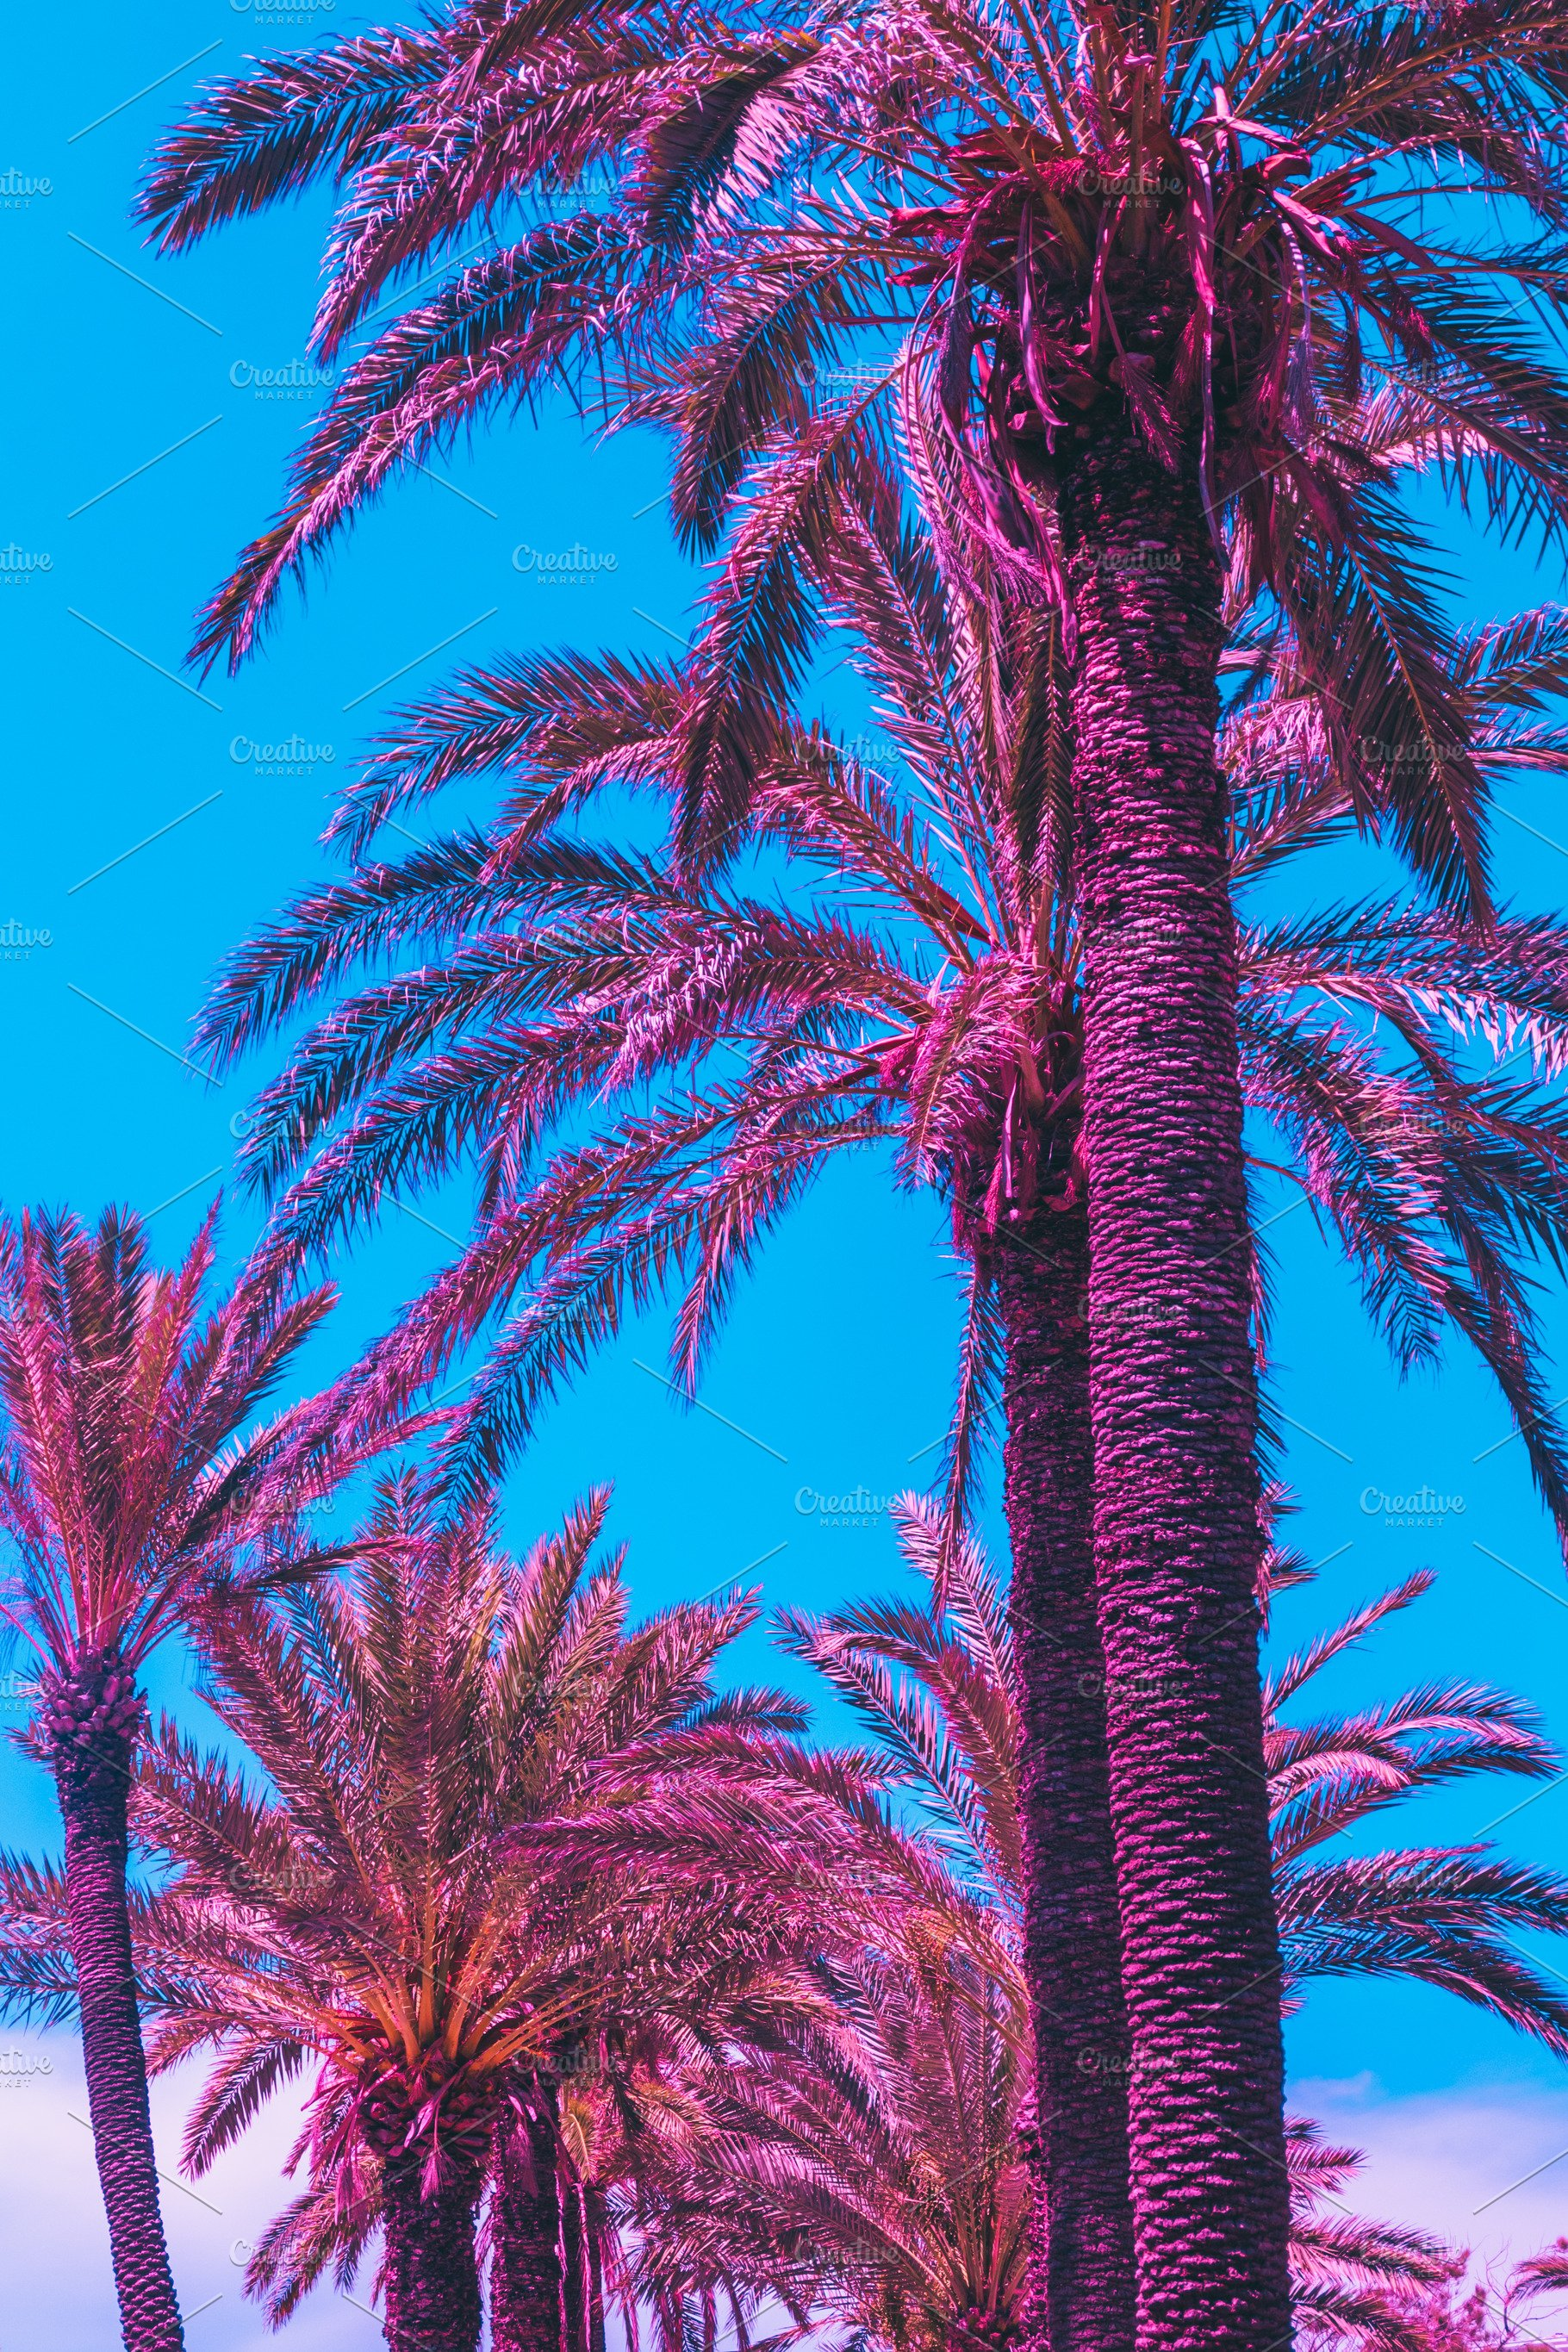 Pink Palm Trees Against The Sky High Quality Nature Stock Photos